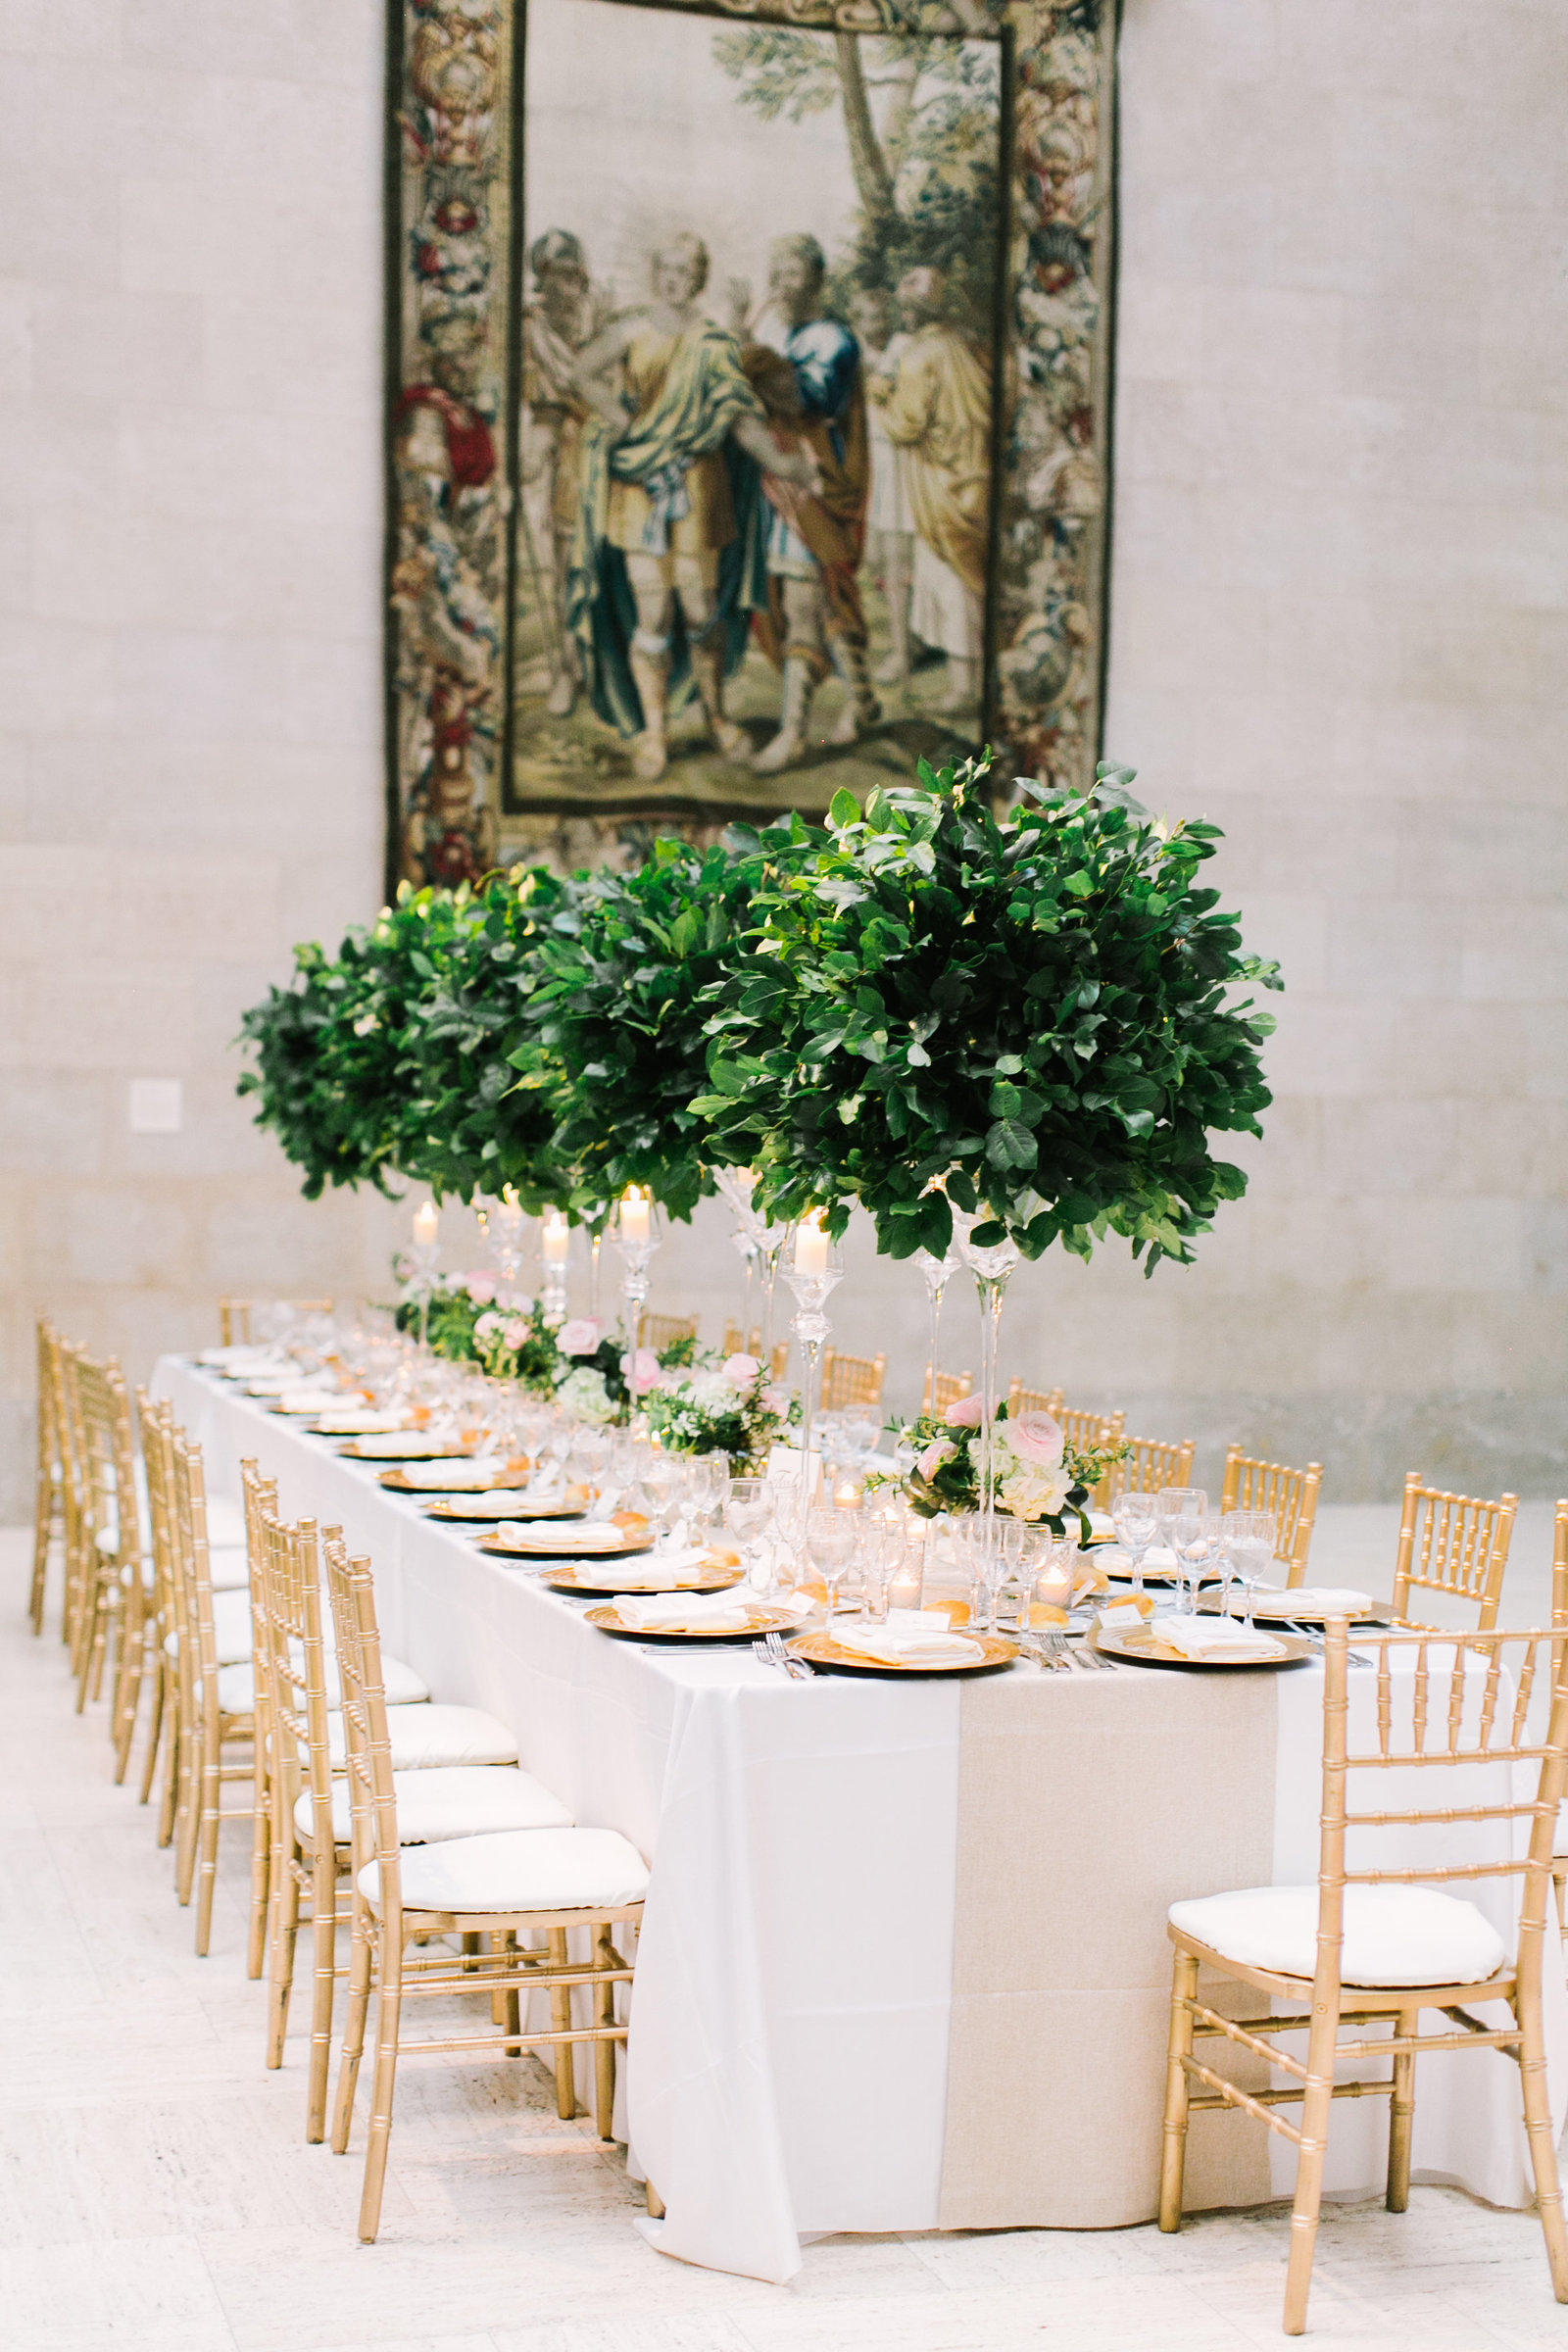 Nelson-Atkins-Kansas-City-Luxury-Greenery-Wedding-Planning-Madison-Sanders-365